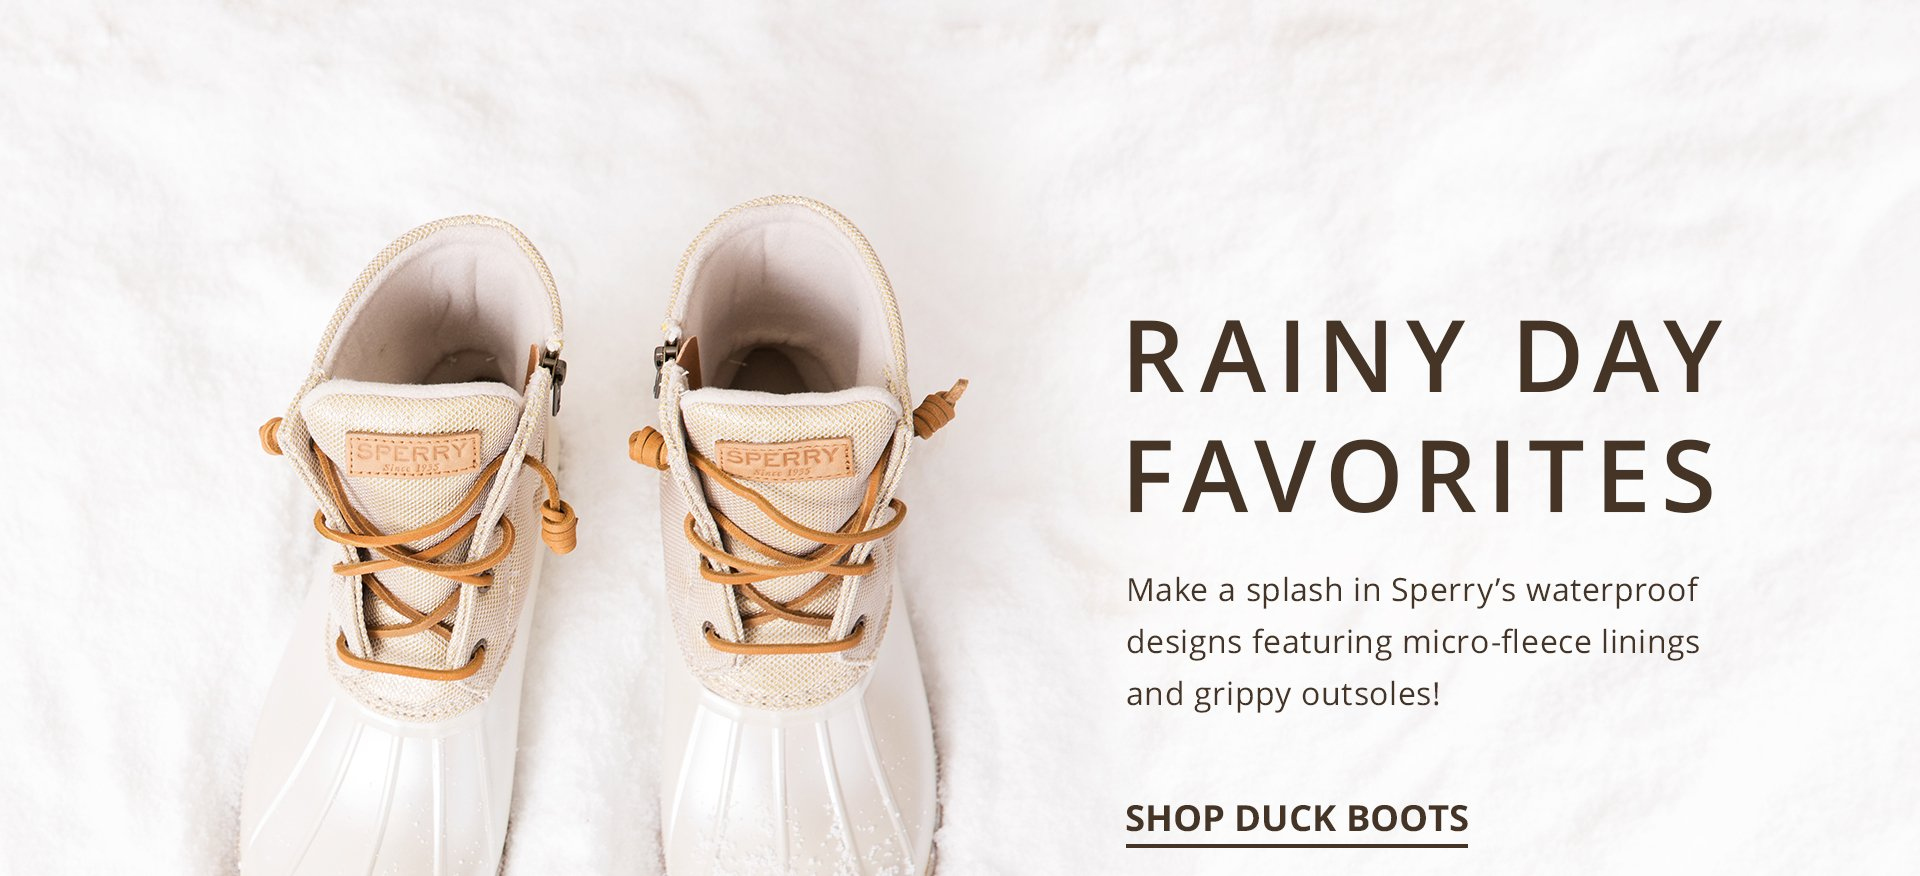 Rainy day favorites. Make a splash in Sperry's waterproof designs featuring micro-fleece linings and grippy outsoles. Shop Duck Boots.